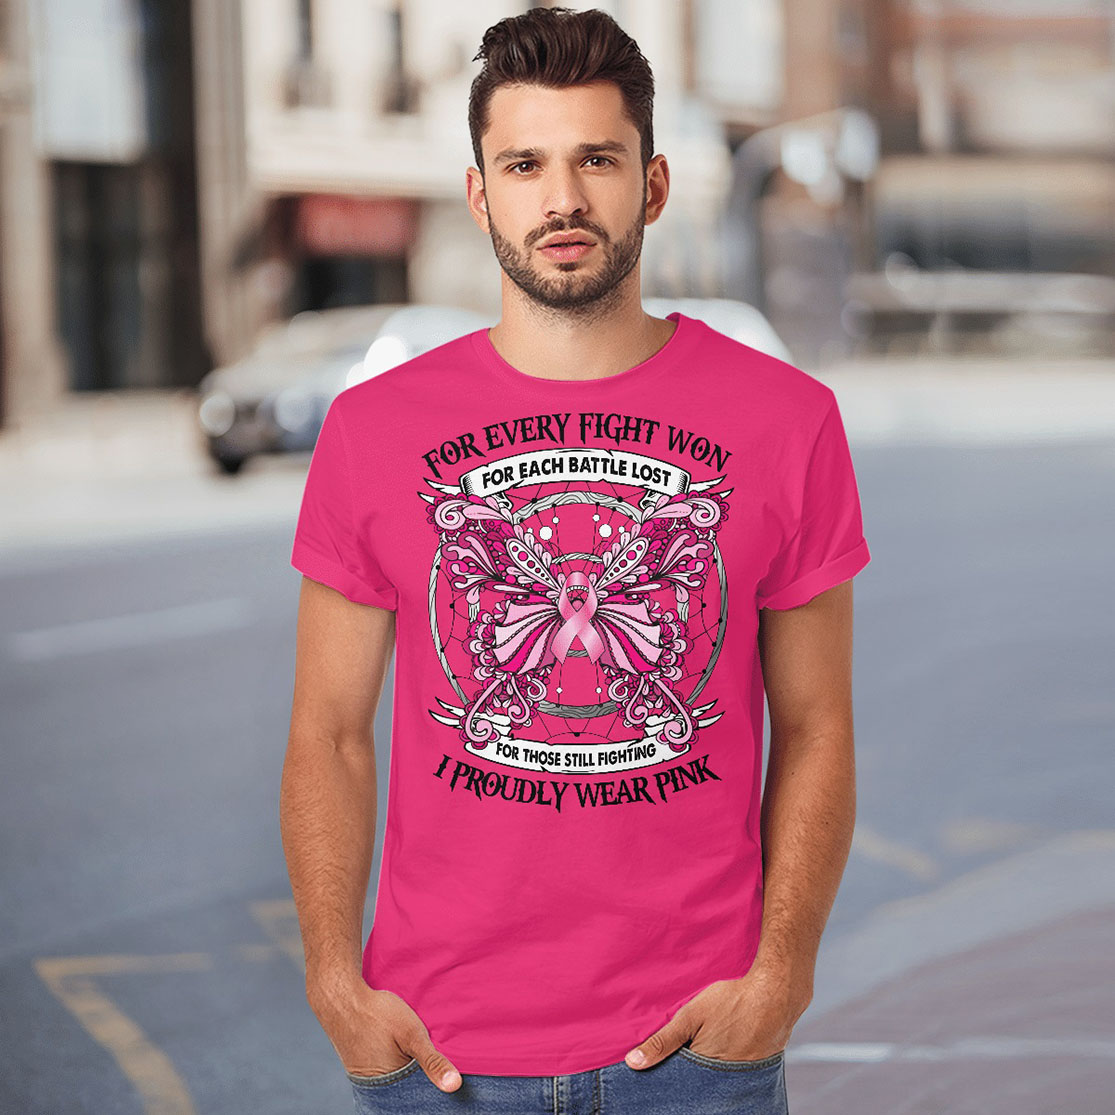 Breast cancer awareness For every fight won for each battle lost shirt